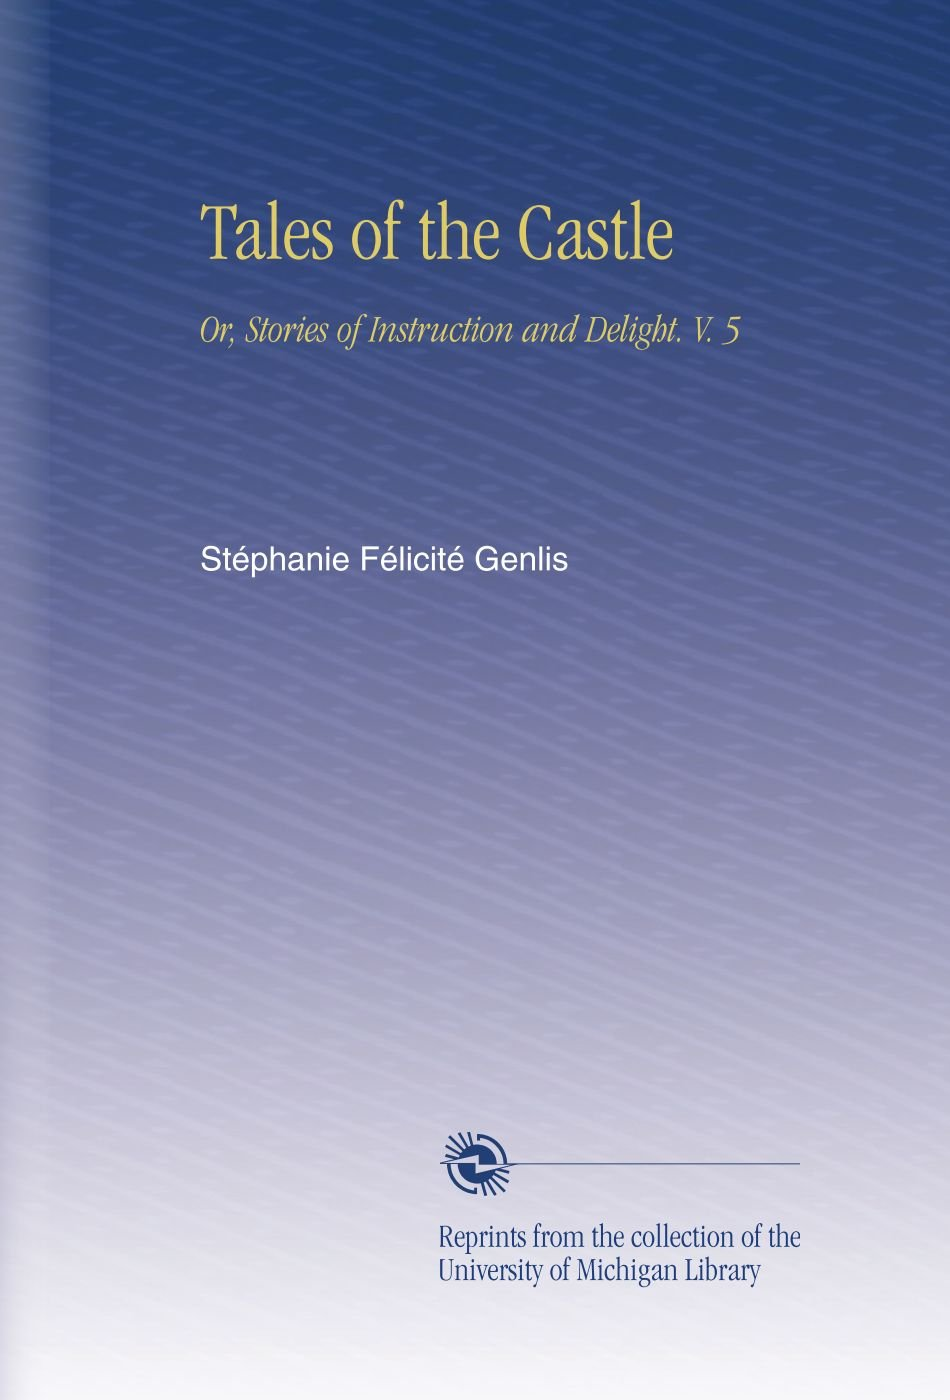 Download Tales of the Castle: Or, Stories of Instruction and Delight. V.  5 ebook